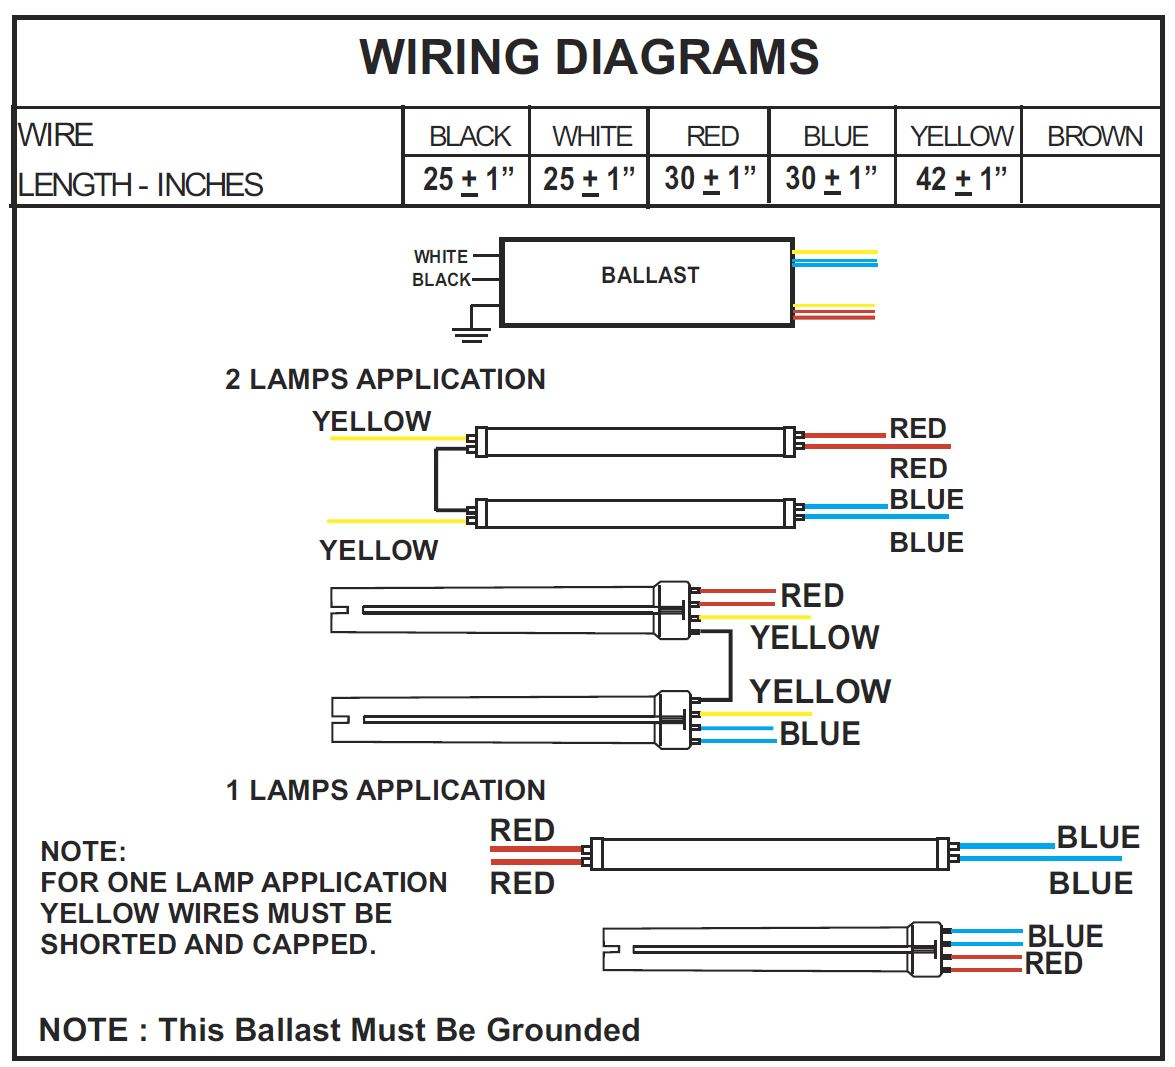 277 Volt Wiring For Lighting Electrical Diagram Schematics Vac Data Schema Fluorescent T5 House Symbols U2022 277v Dimmer